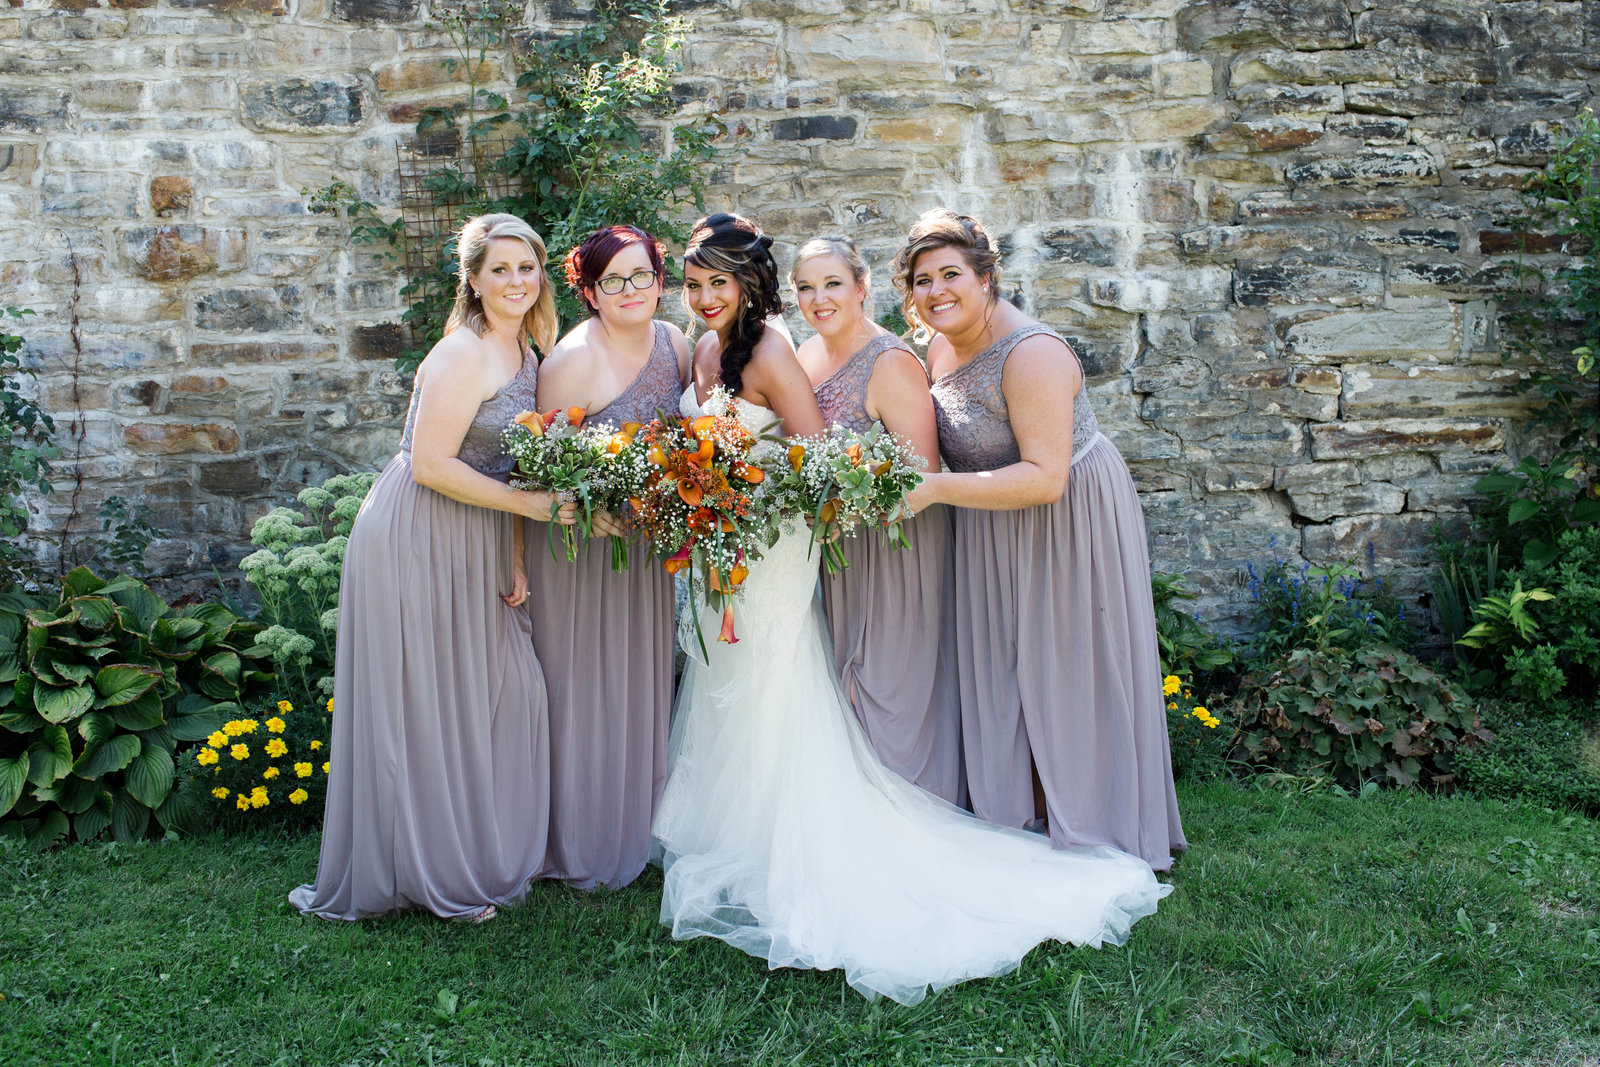 bride stands with her bridesmaids in front of a stone wall